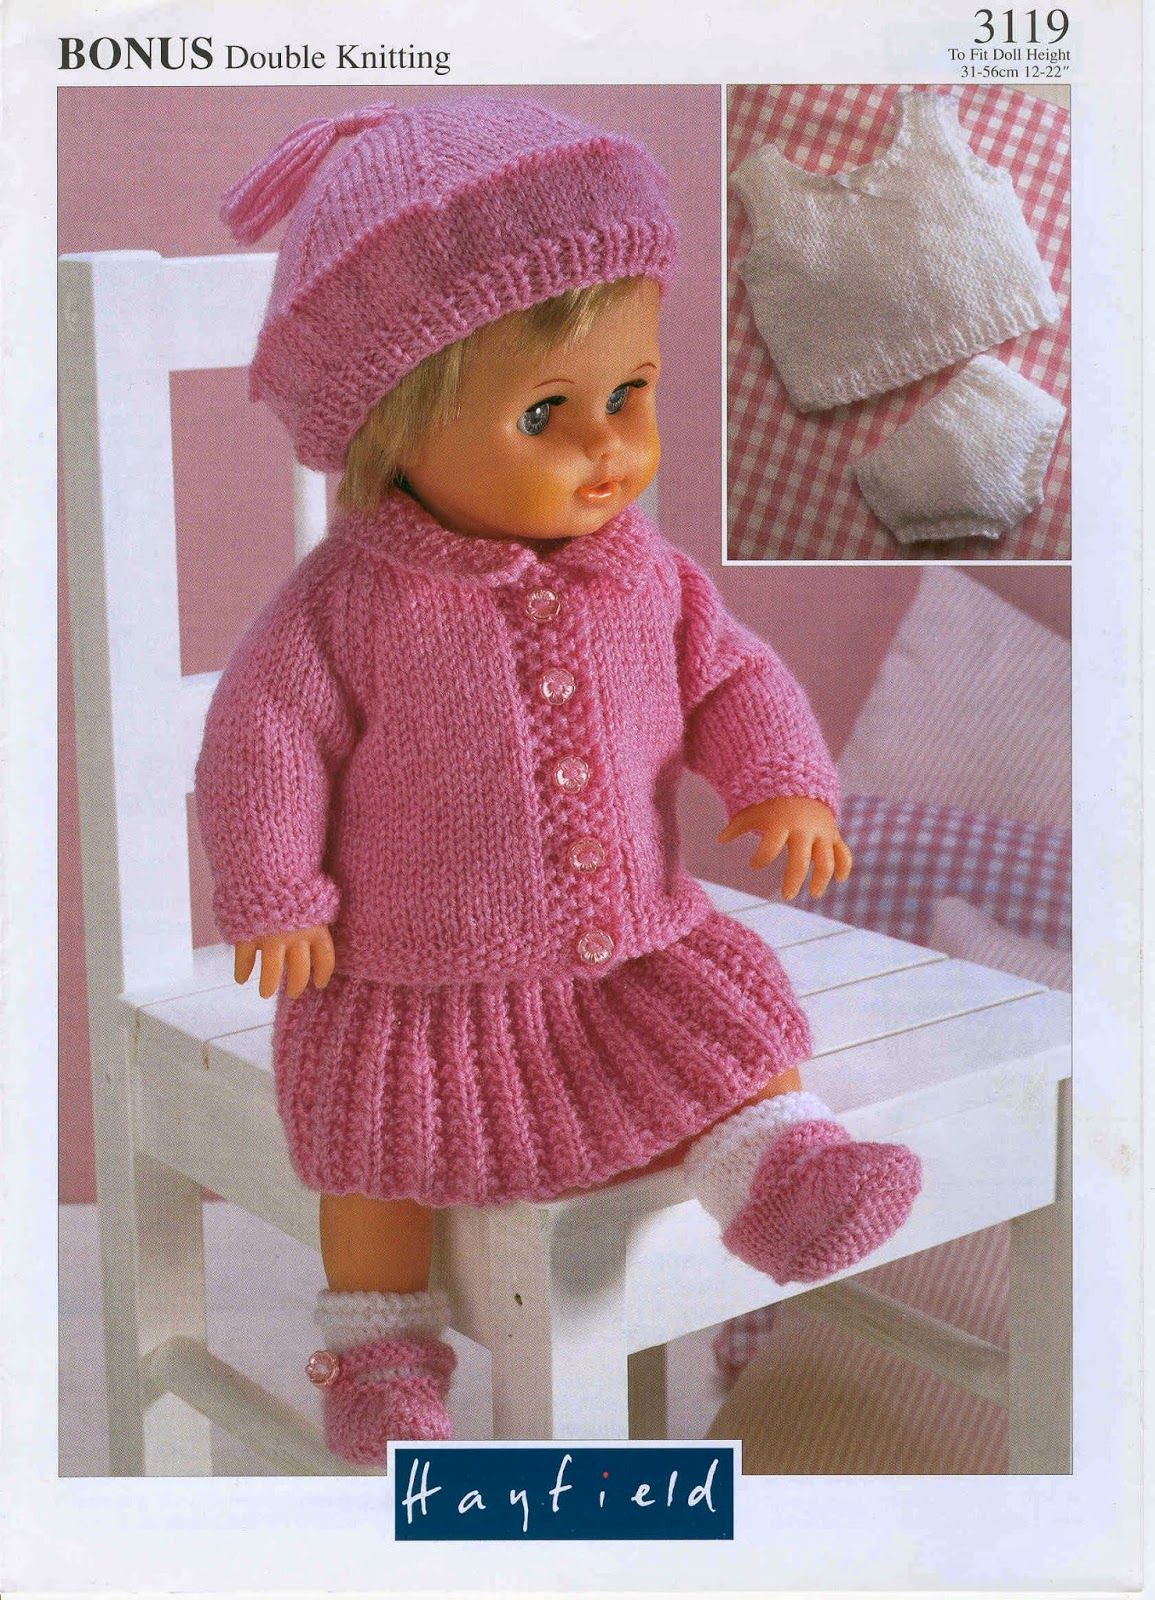 Herbie's Doll Sewing, Knitting & Crochet Pattern Collection: Vintage Hayfield Knitting Pattern Number 3119 For 12 inch to 22 inch Baby Dolls #babydoll